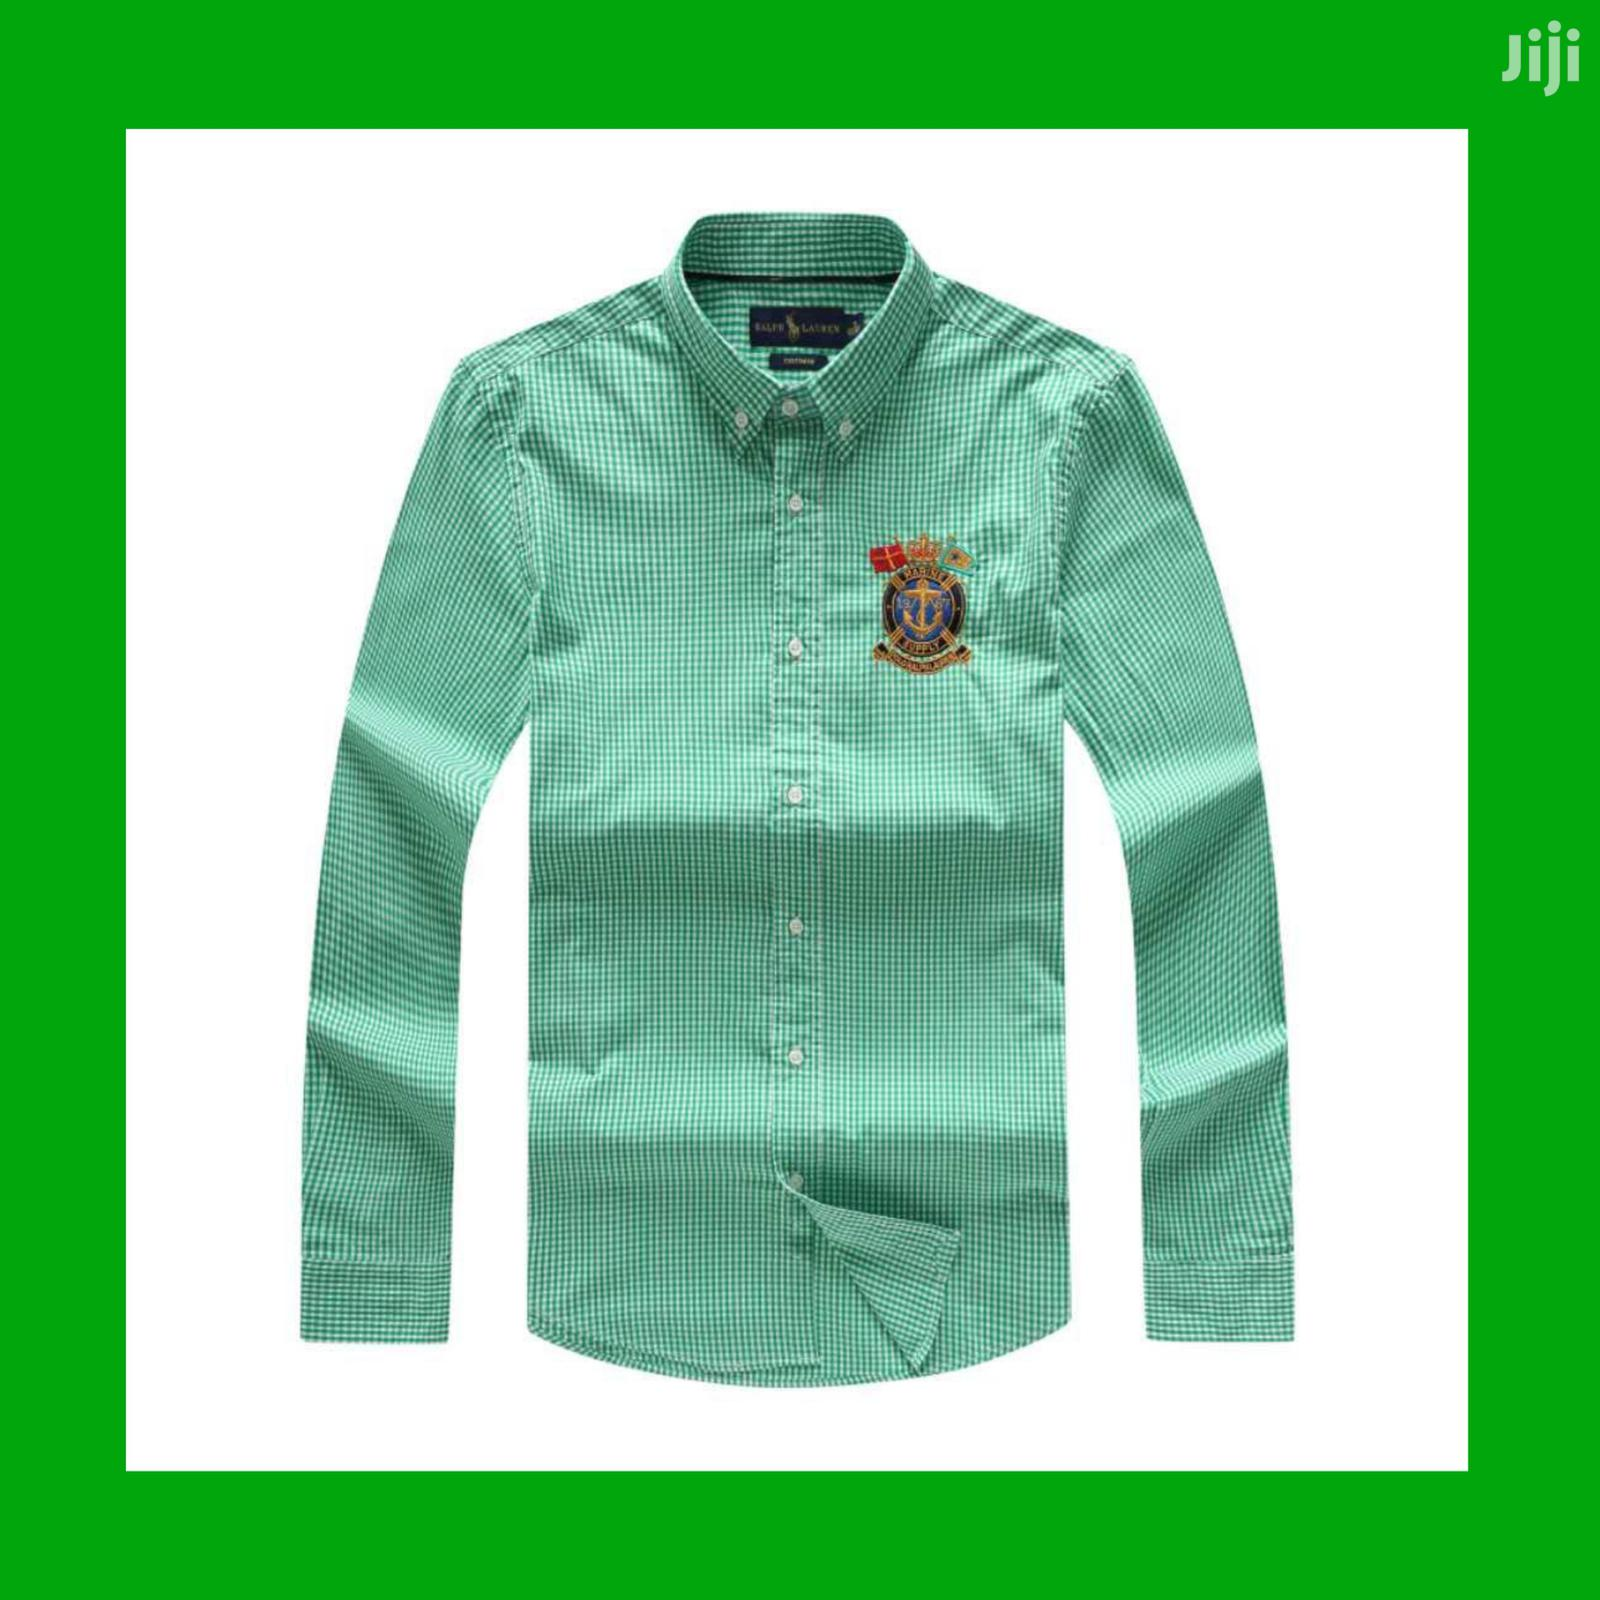 Crested Polo Ralph Lauren Shirt | Clothing for sale in Lagos Island, Lagos State, Nigeria